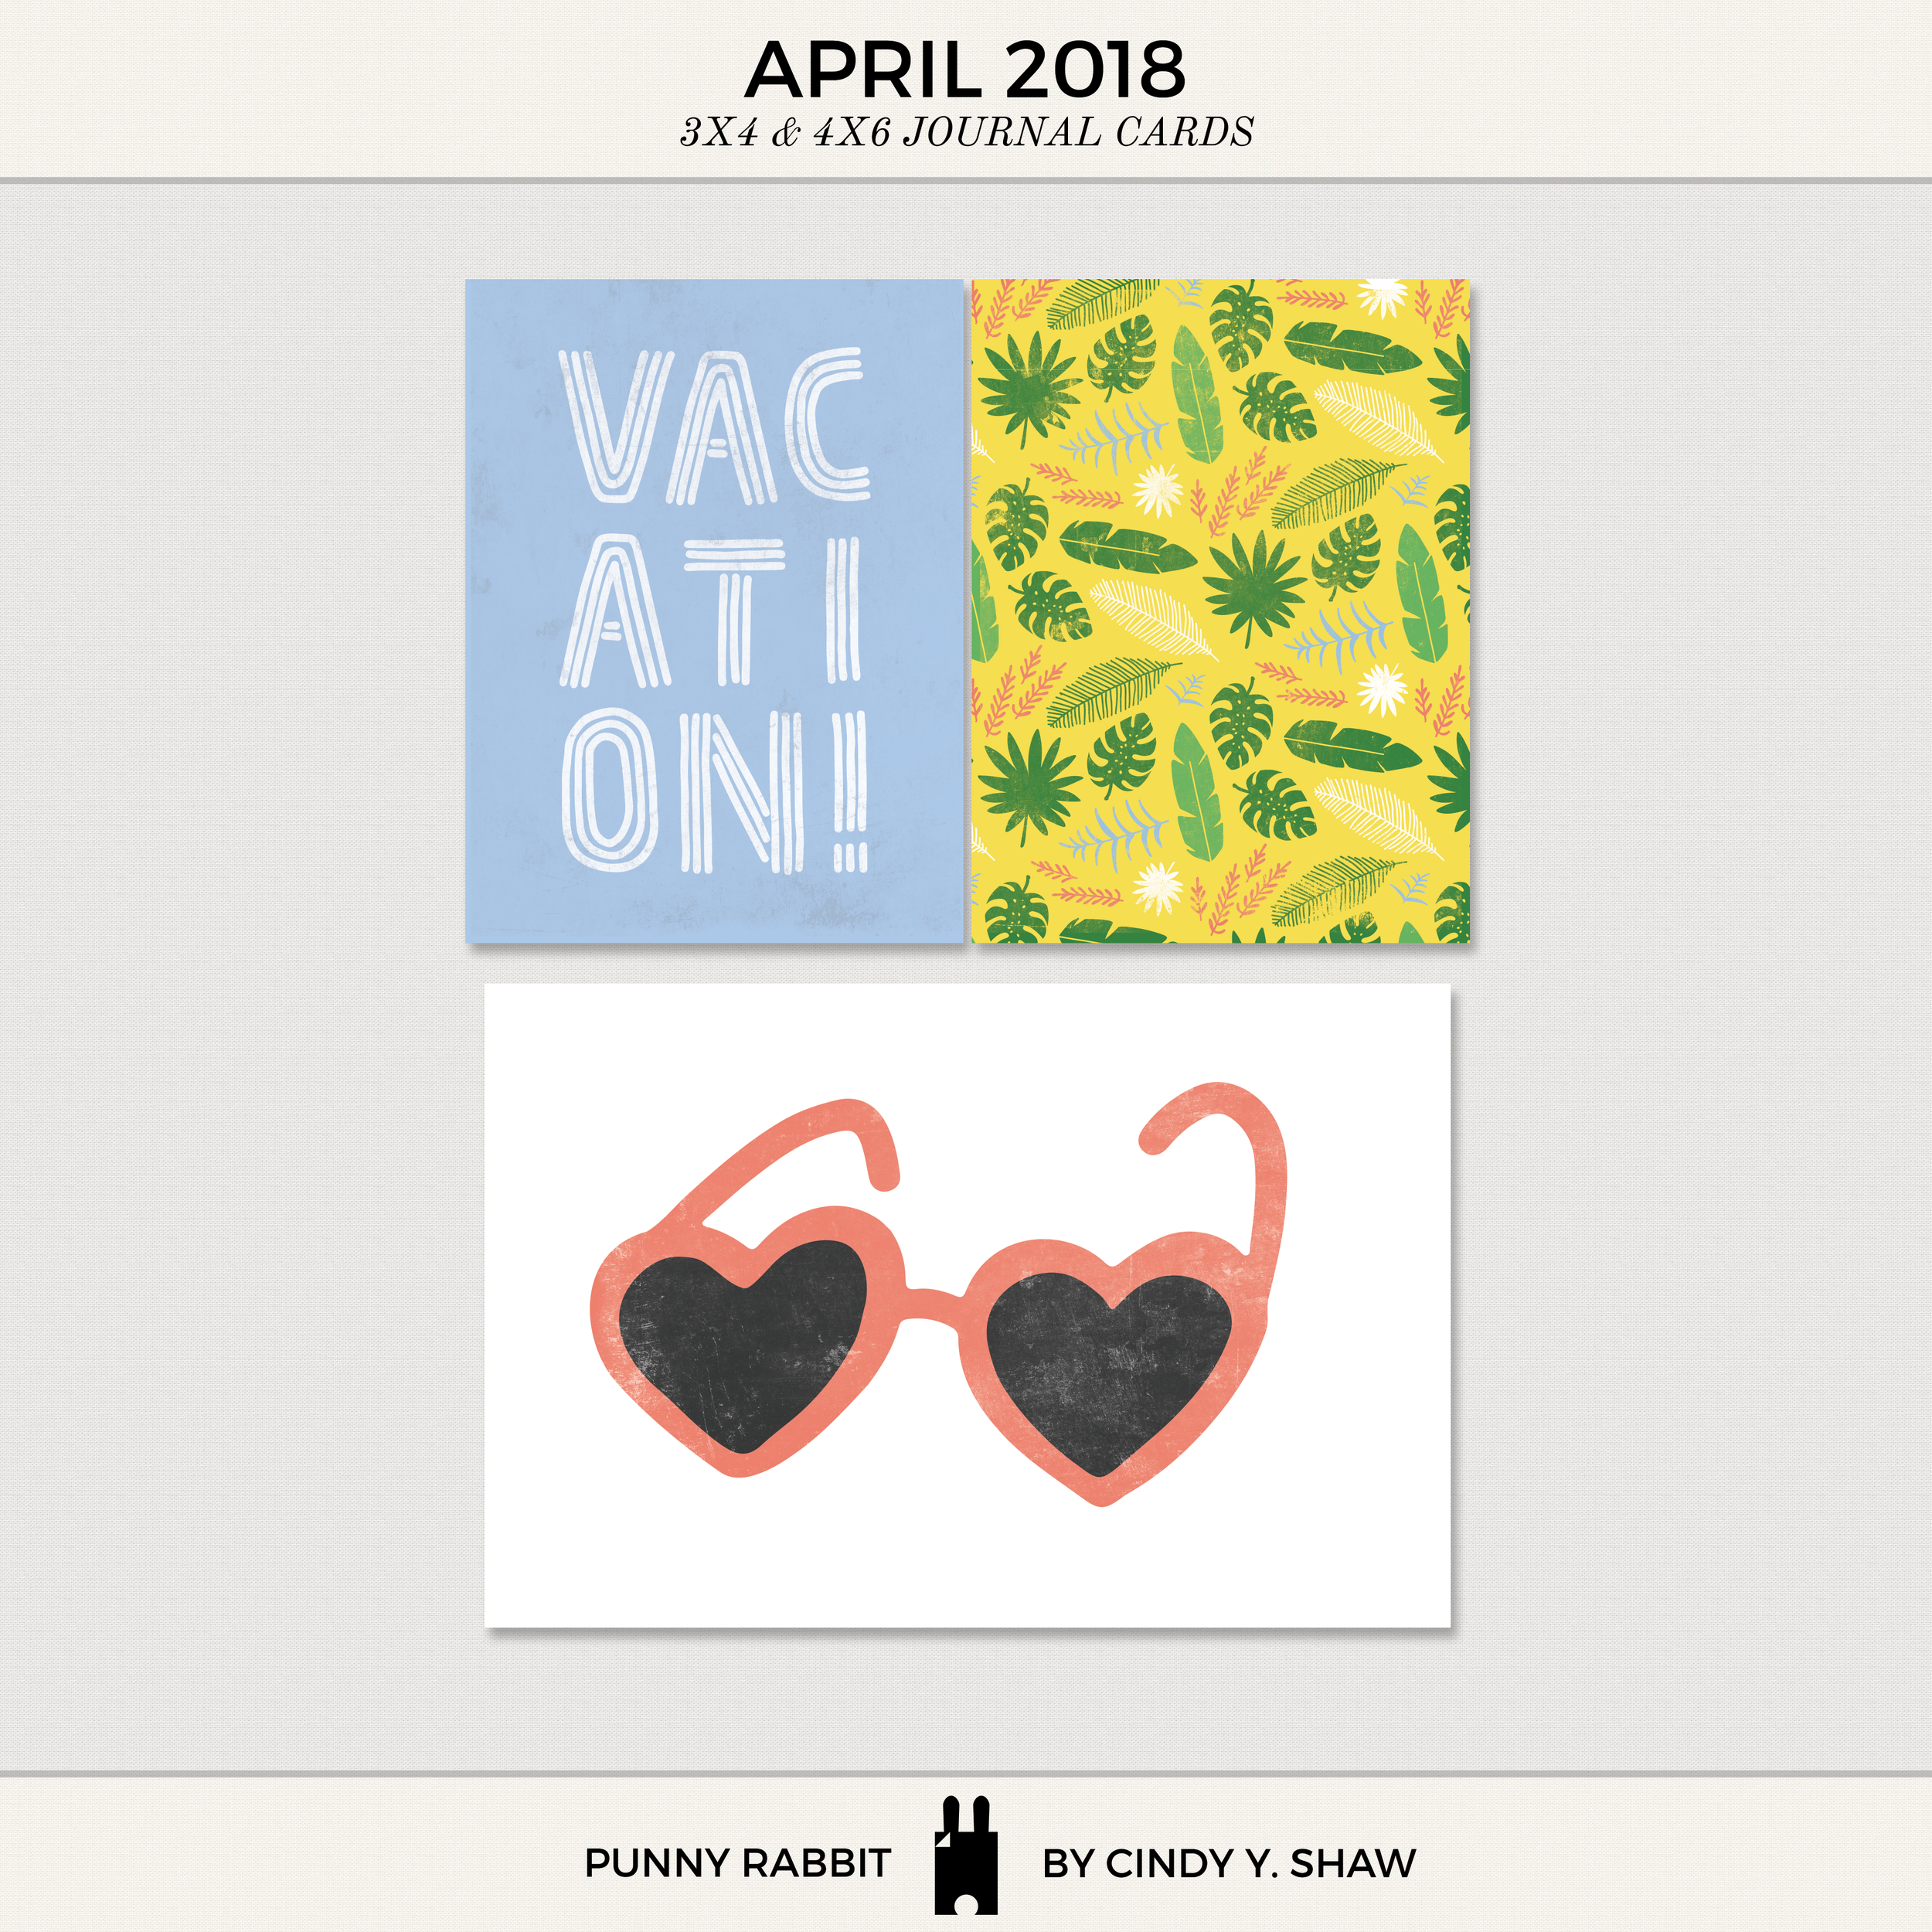 Punny-Rabbit-April-2018-Journal-Cards-Preview.png